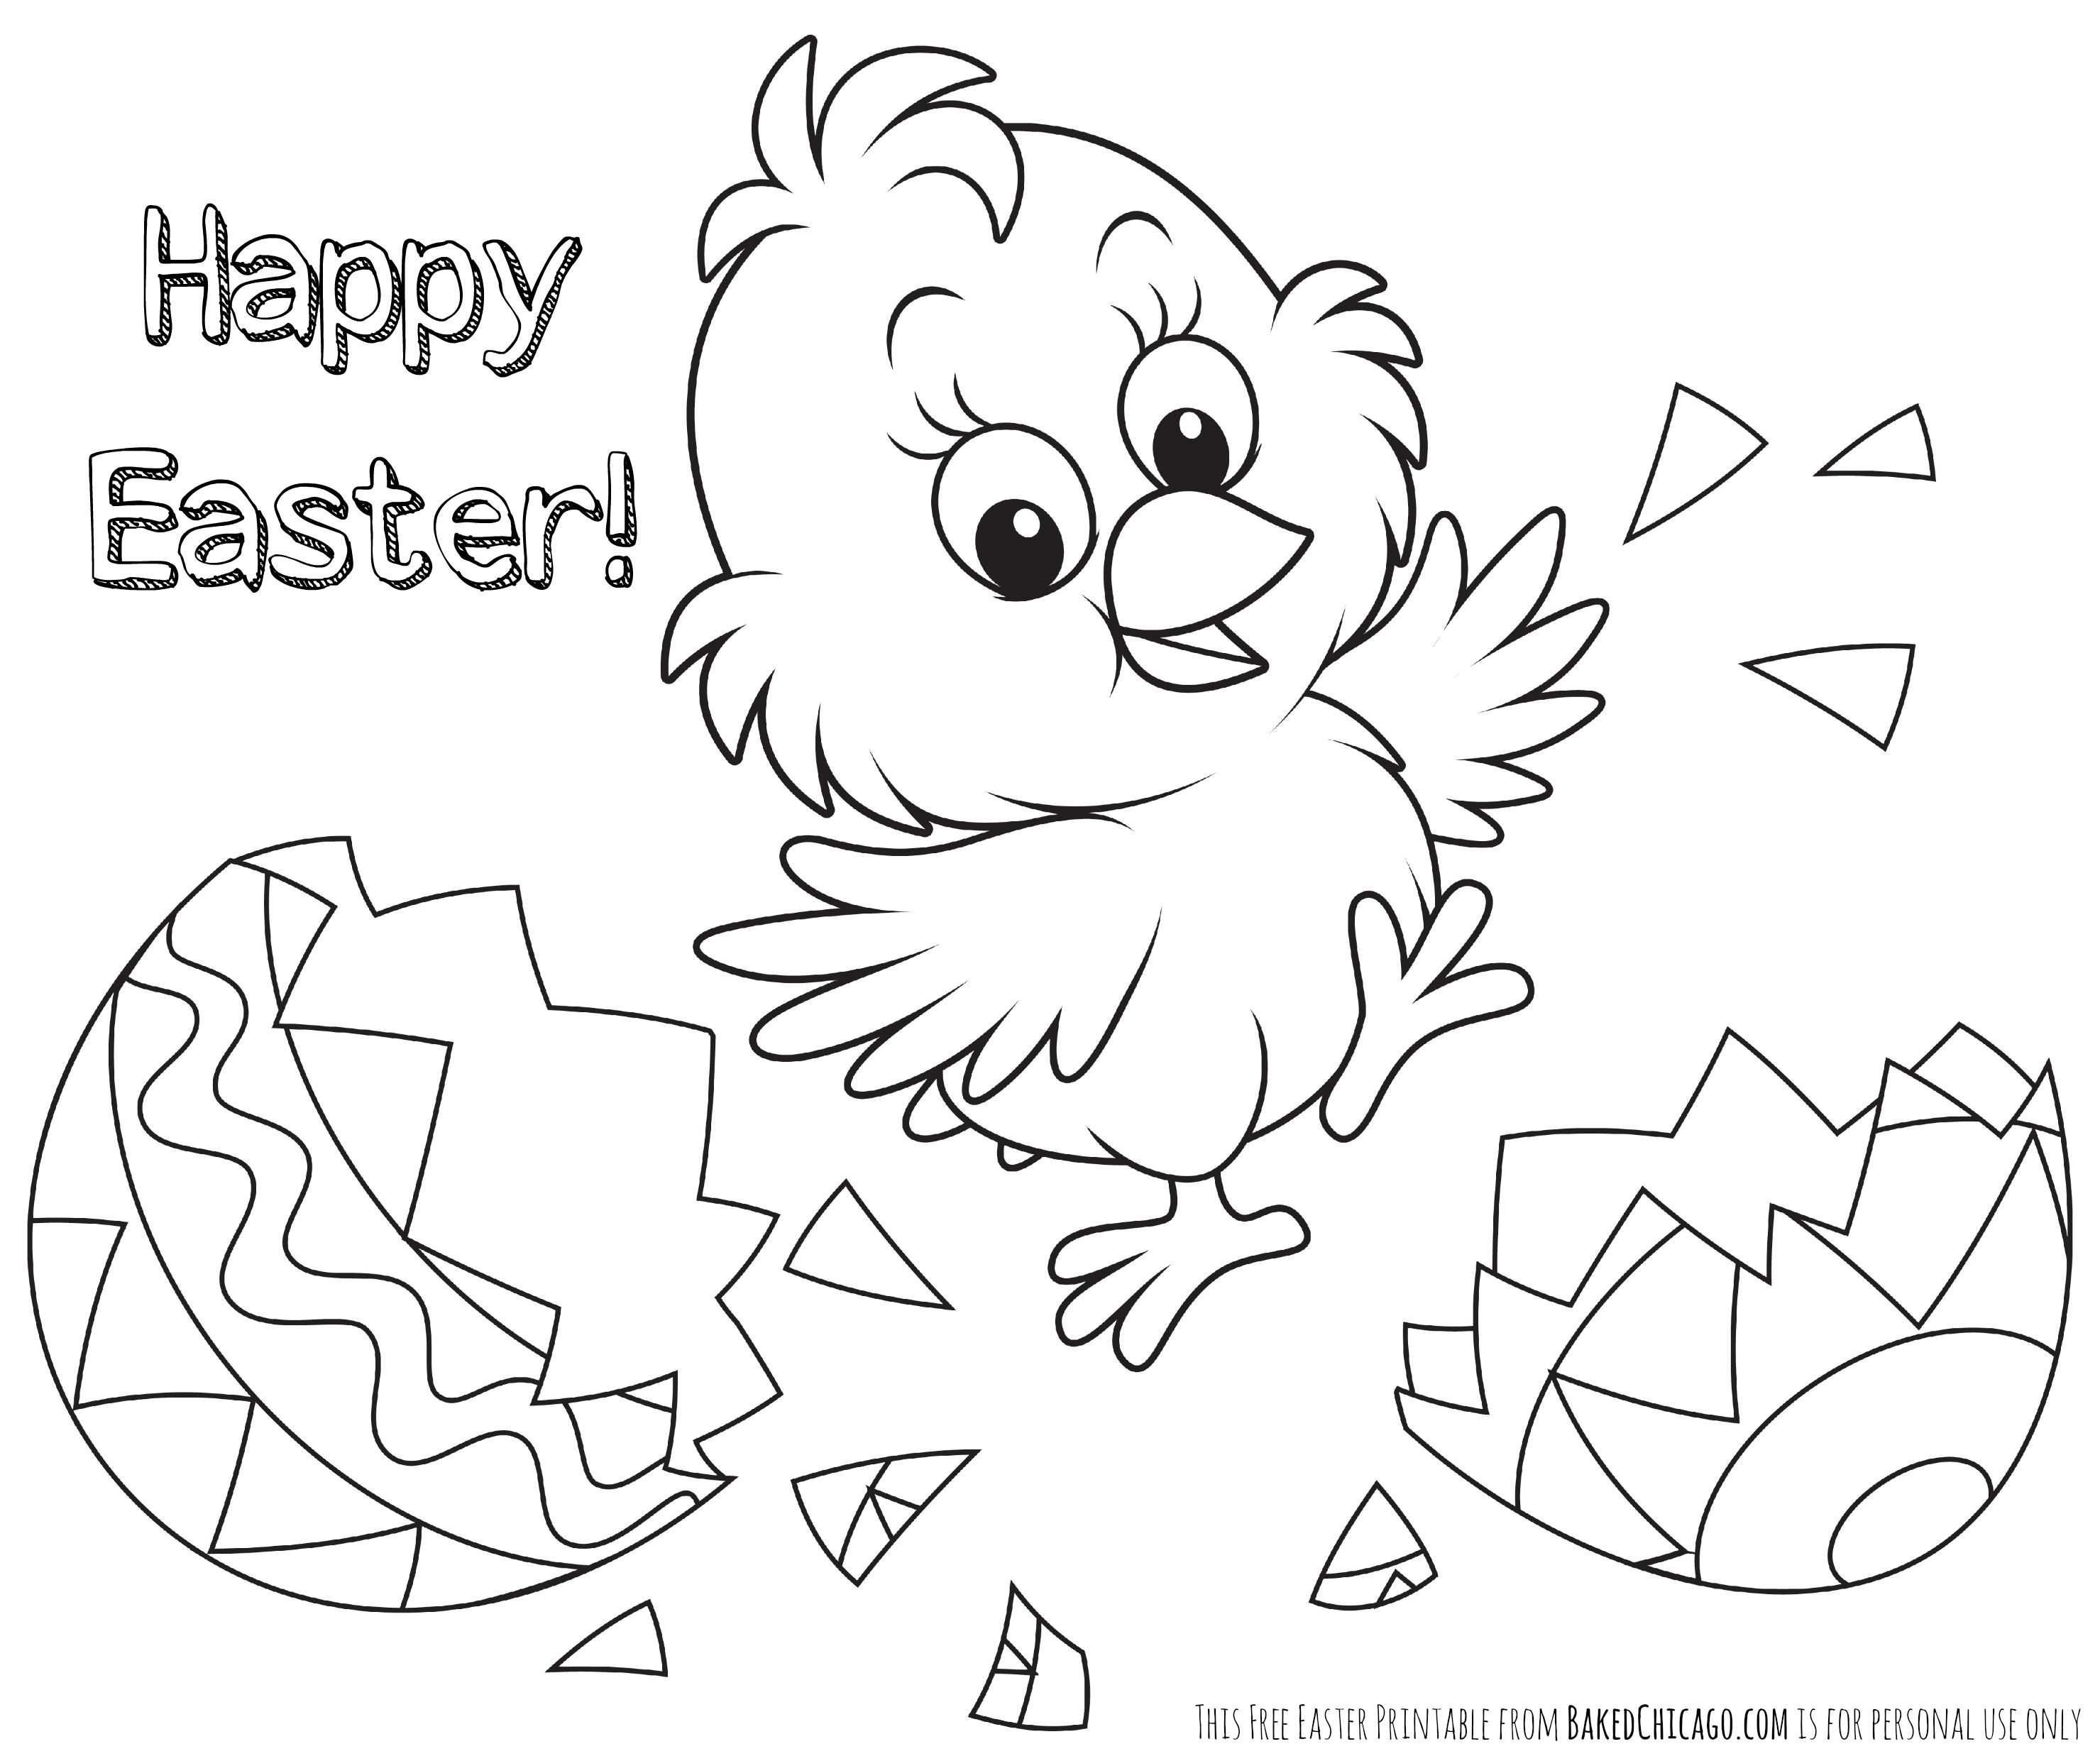 Easter Coloring Pages Printable Bloodbrothers Me Colouring Sheets - Free Easter Color Pages Printable